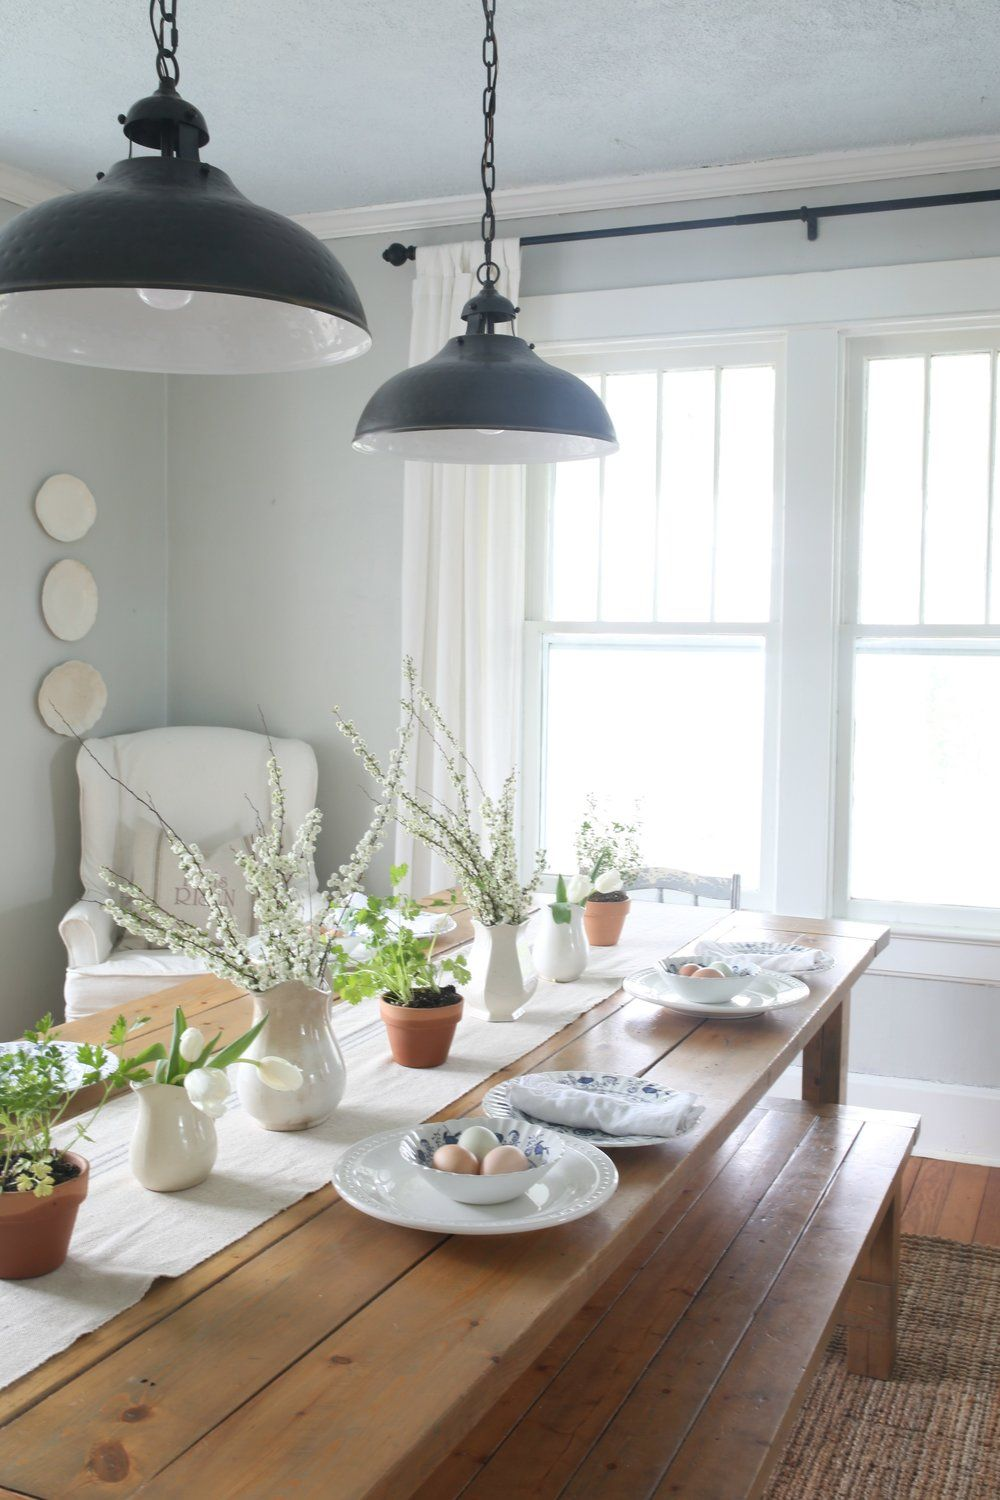 Farmhouse Easter Table Setting   Esszimmer und Ideen